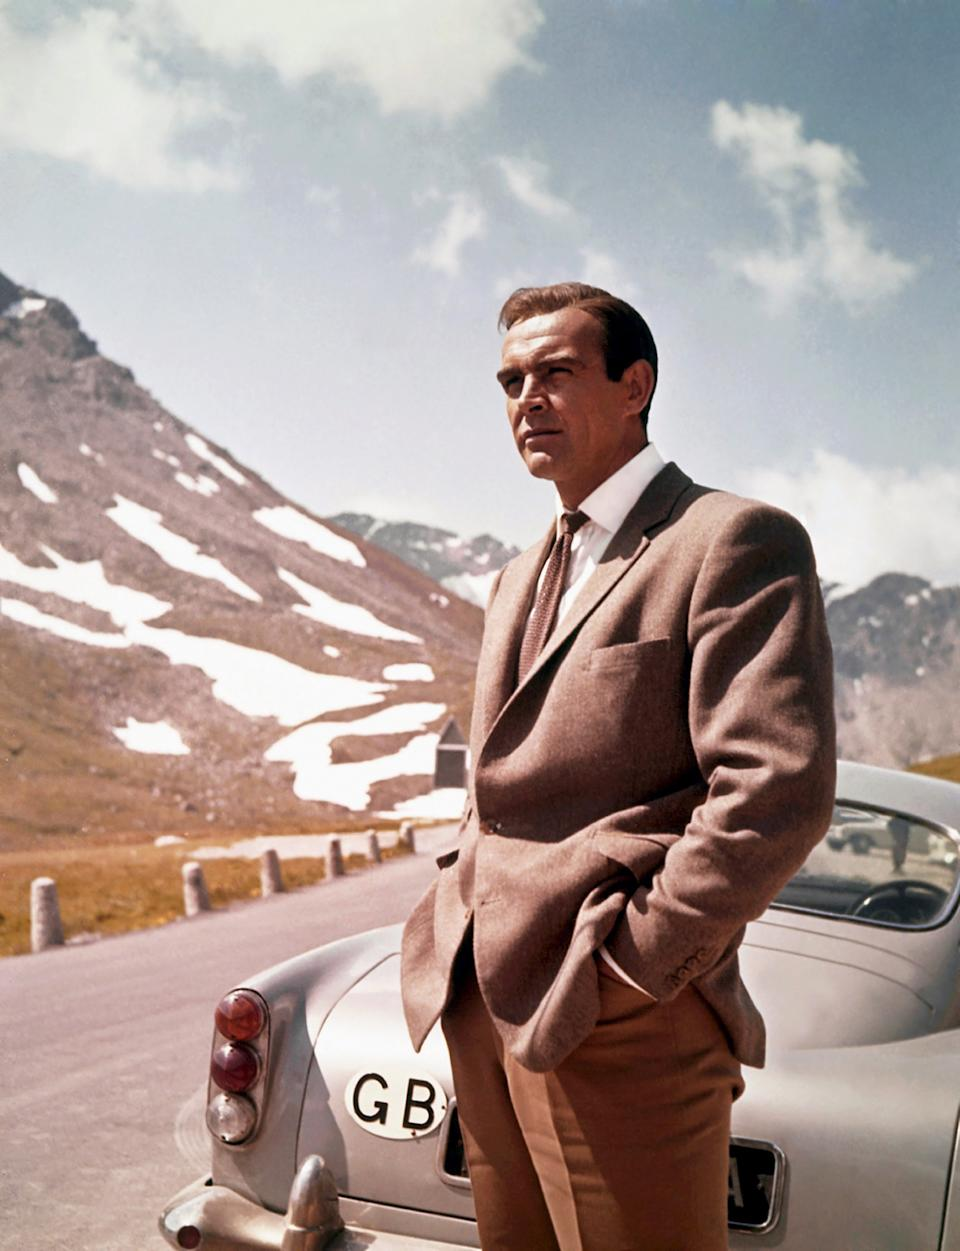 1964:  Actor Sean Connery poses as James Bond next to his Aston Martin DB5 in a scene from the United Artists film 'Goldfinger' in 1964 (Photo by Donaldson Collection/Michael Ochs Archives/Getty Images)